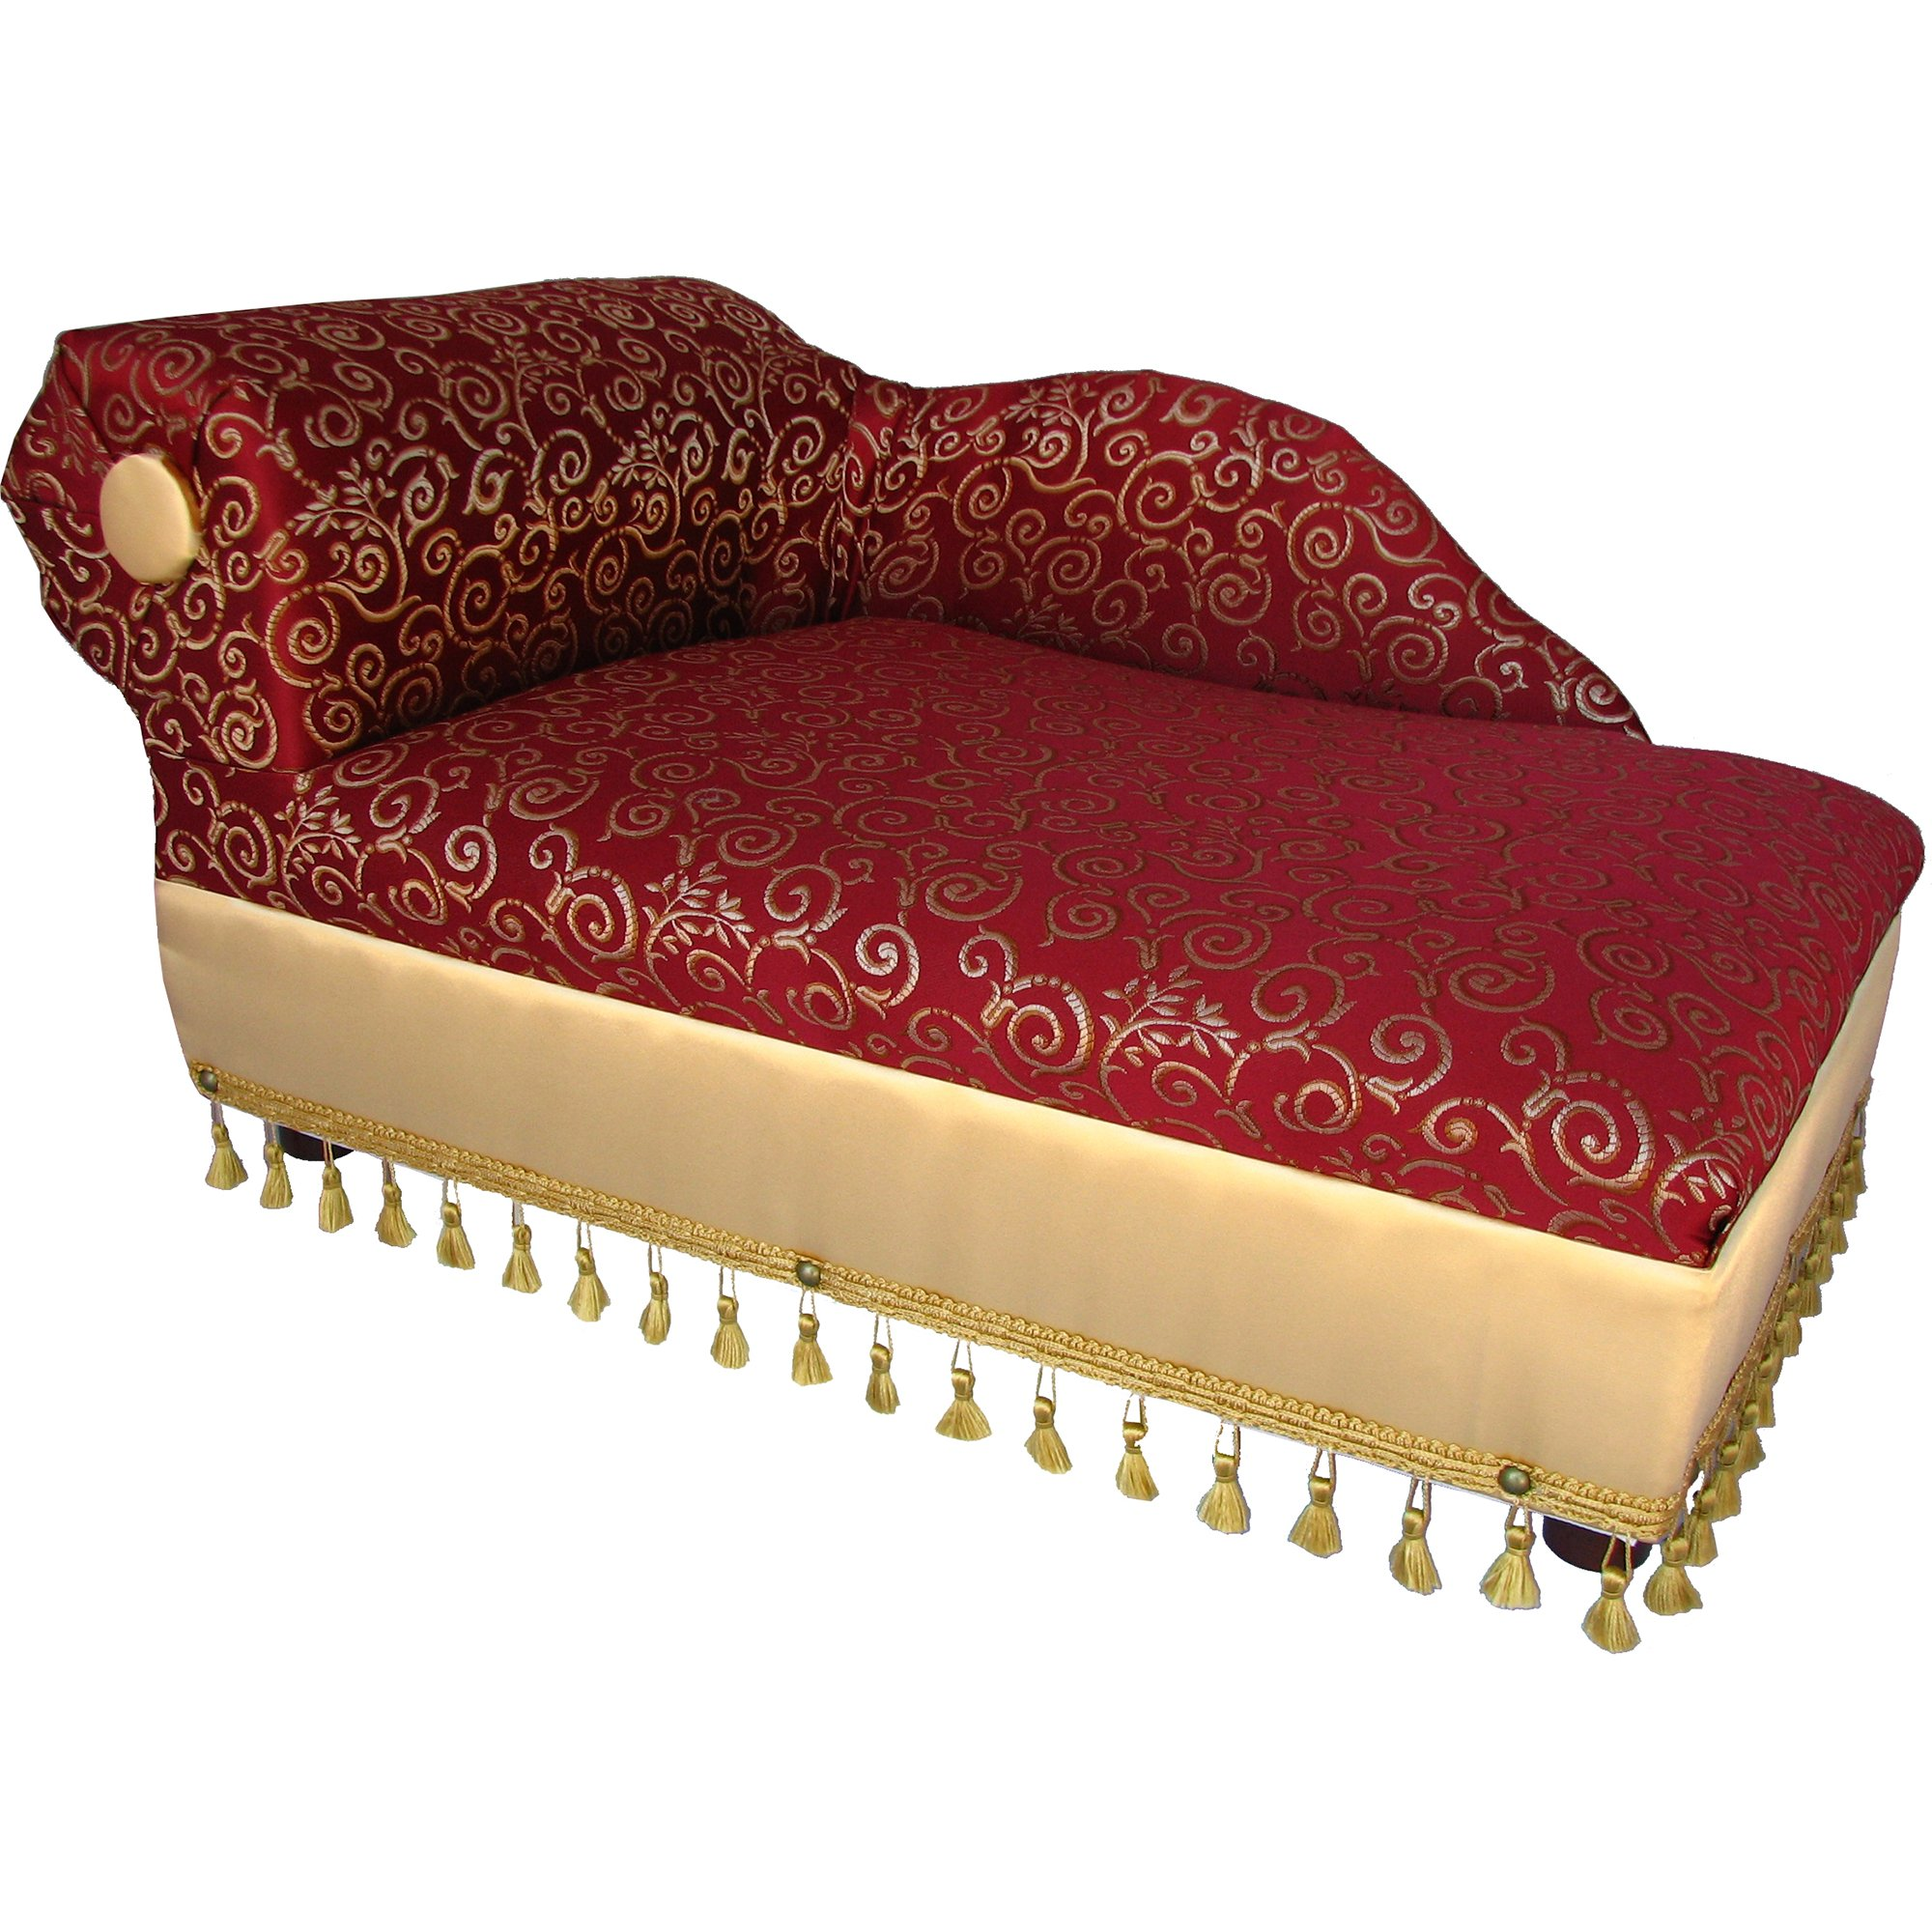 Fantasy Furniture Cleopatra Chaise Red/Gold Pattern